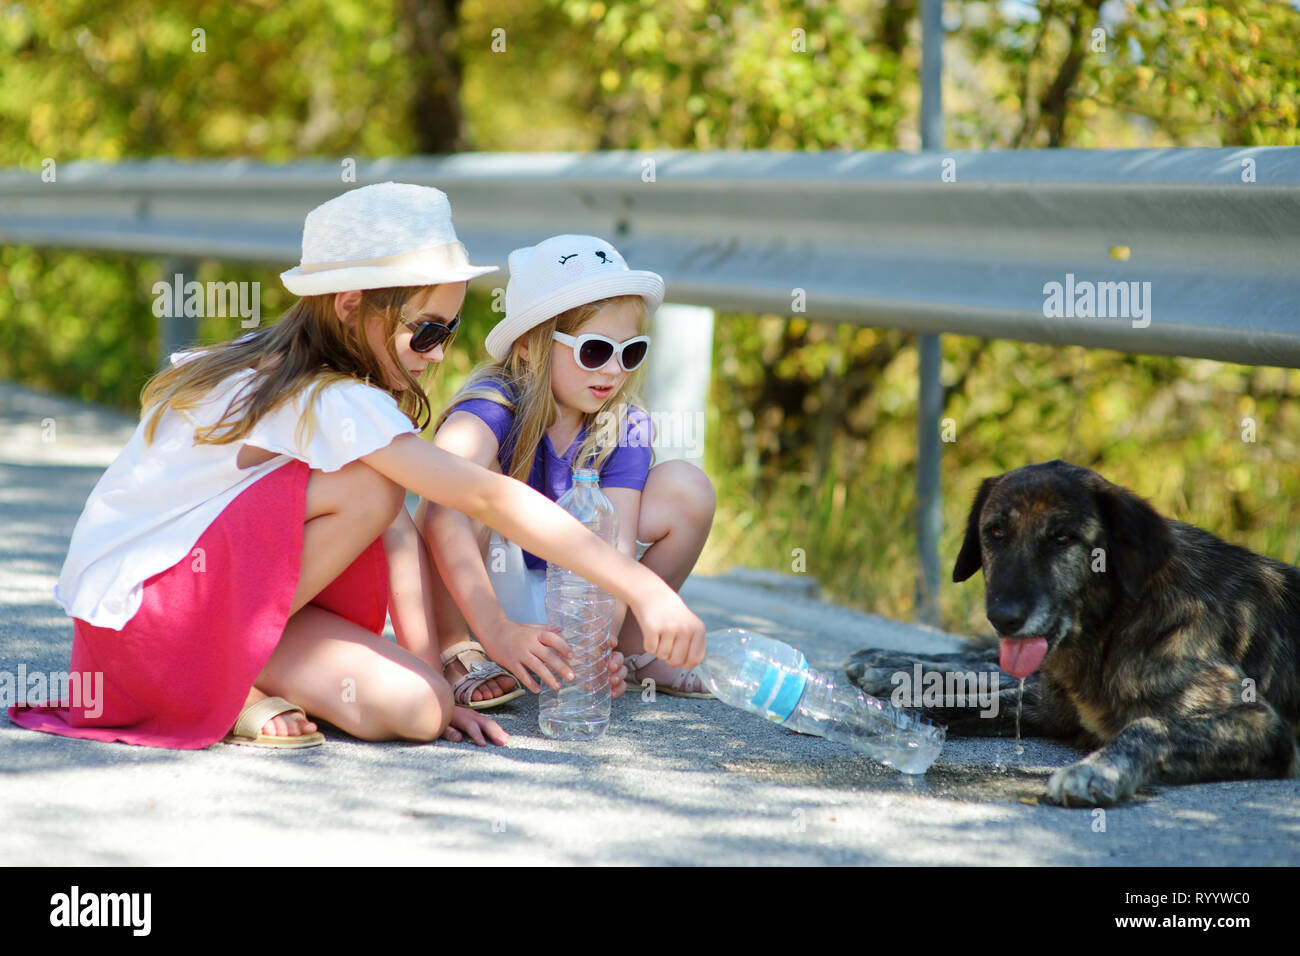 Thirsty black stray dog drinking water from the plastic bottle on hot summer day. Two kids giving cool water to thirsty dog. Caring for animals during - Stock Image